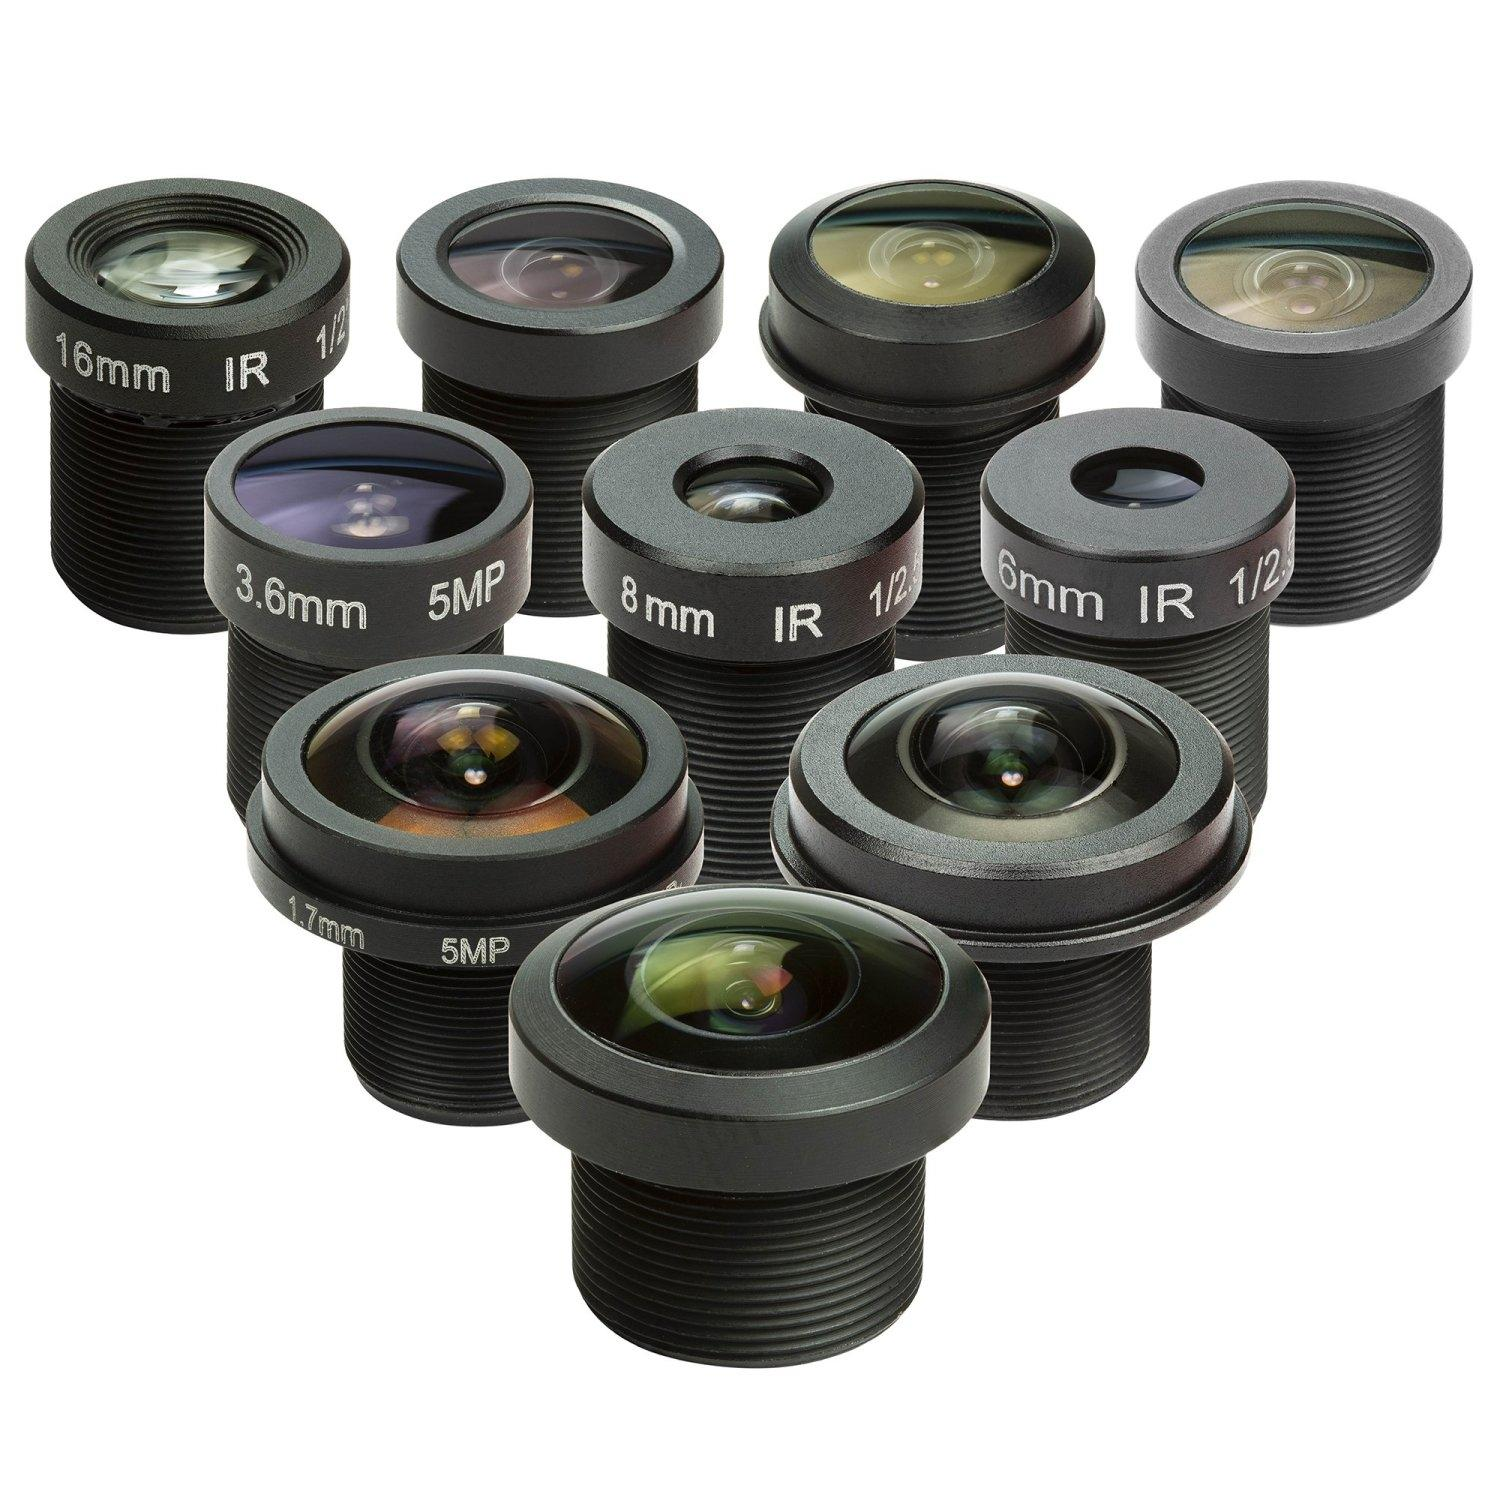 10x Arducam M12 mount camera lens kit for Arduino and Raspberry Pi camera